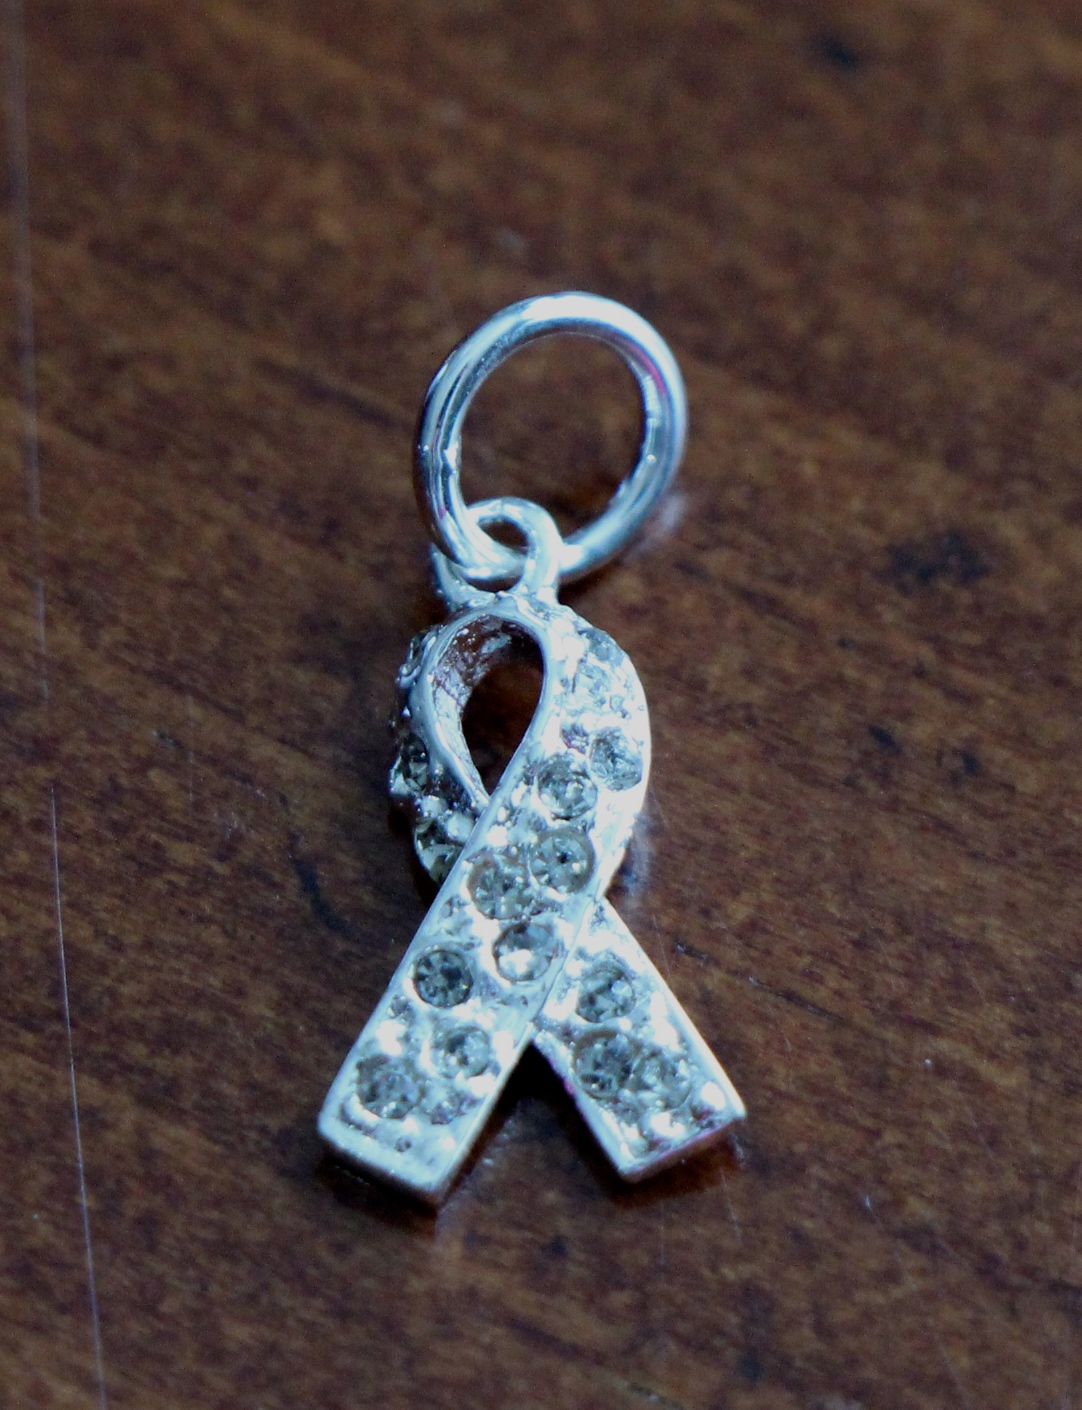 Clear Awareness Ribbon Lung Cancer Kandsimpressions